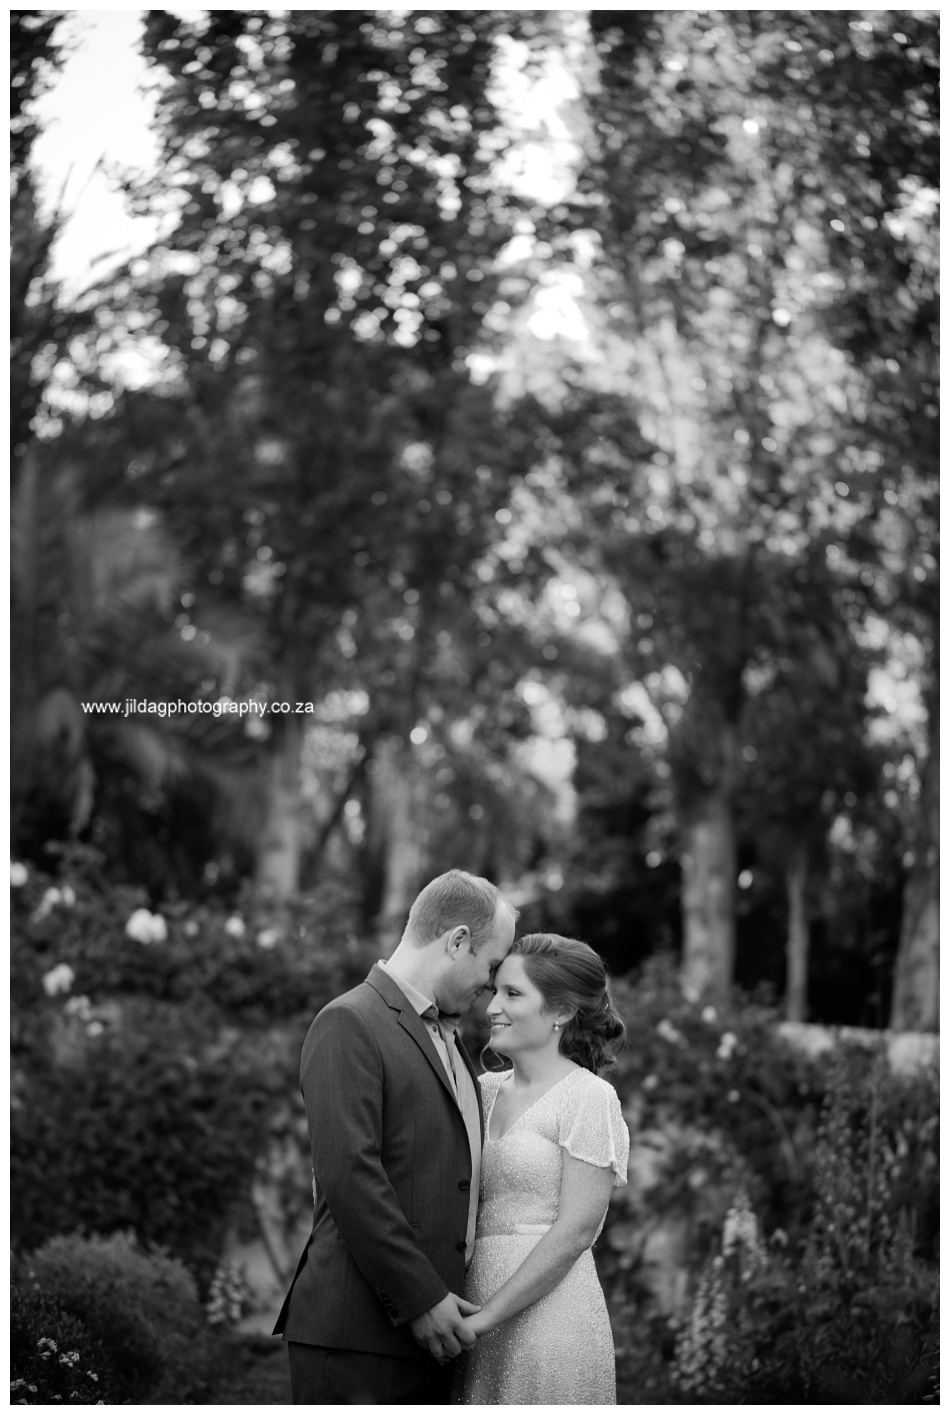 JIlda-G-Photograpy-Jewish-wedding_0455